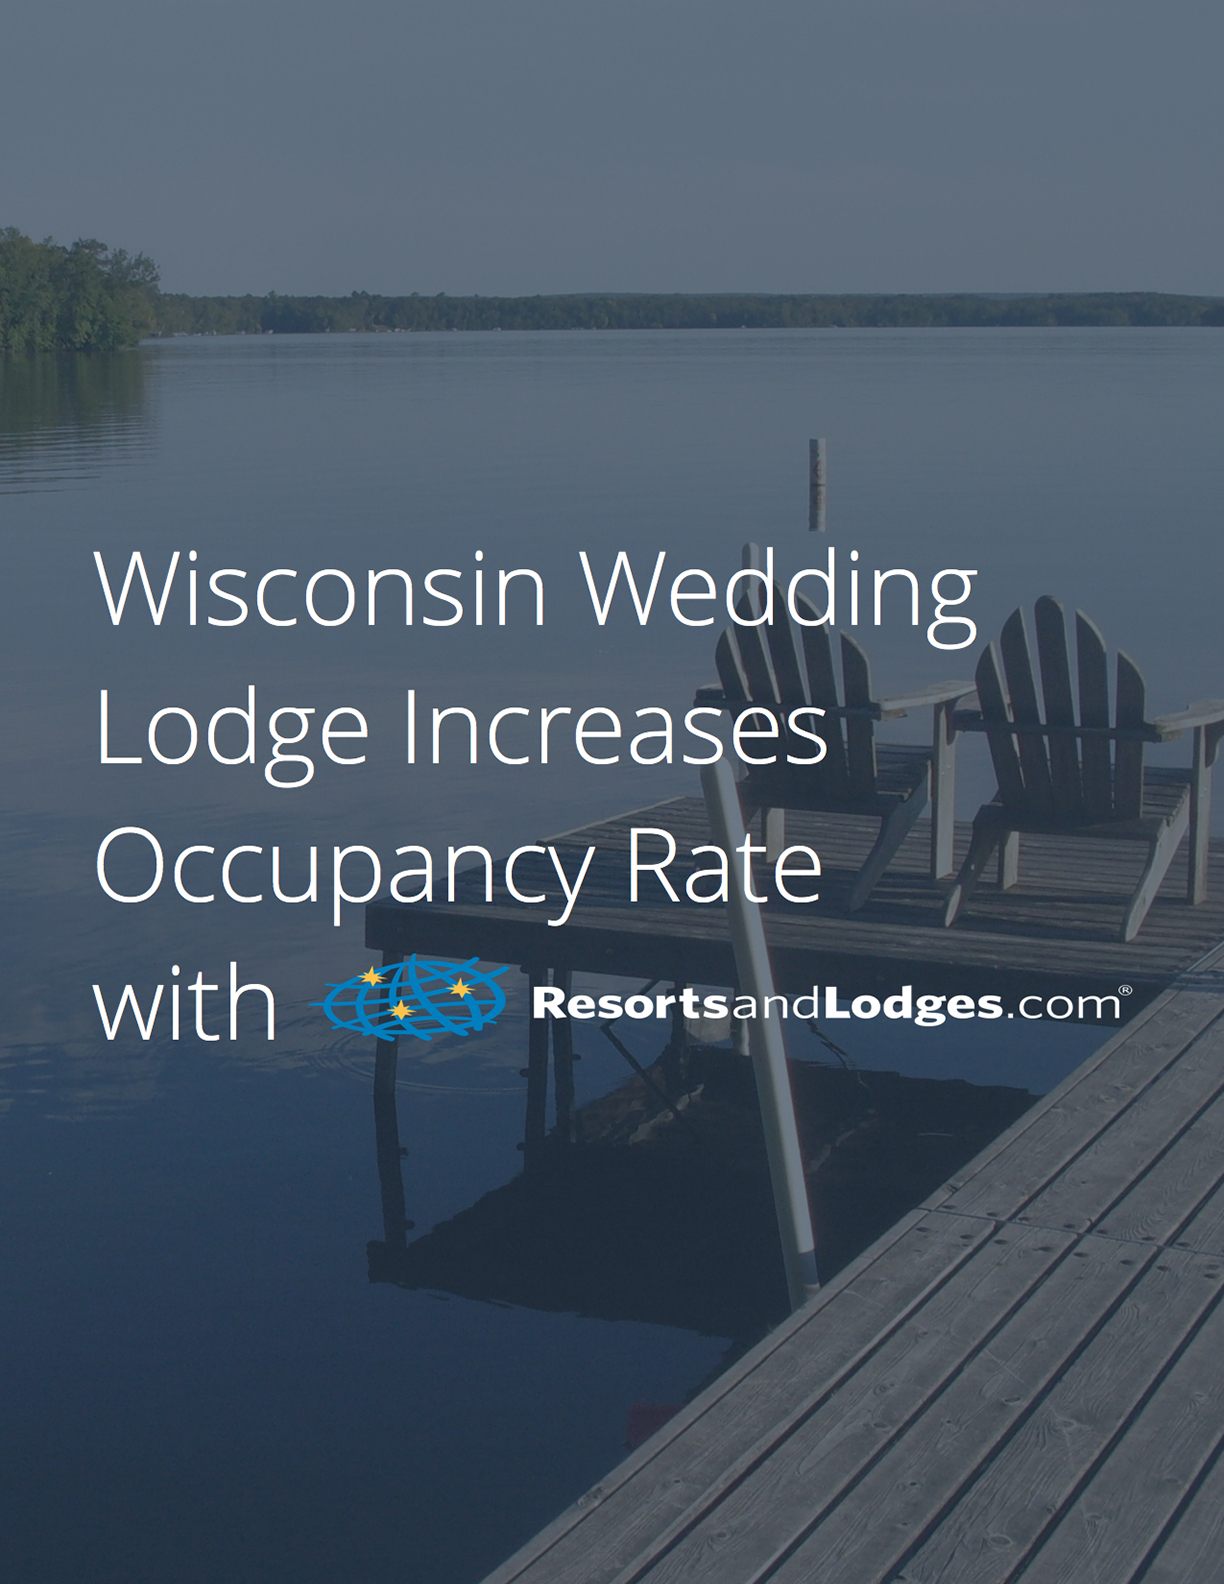 Wisconsin Stouts Island Lodge Case Study